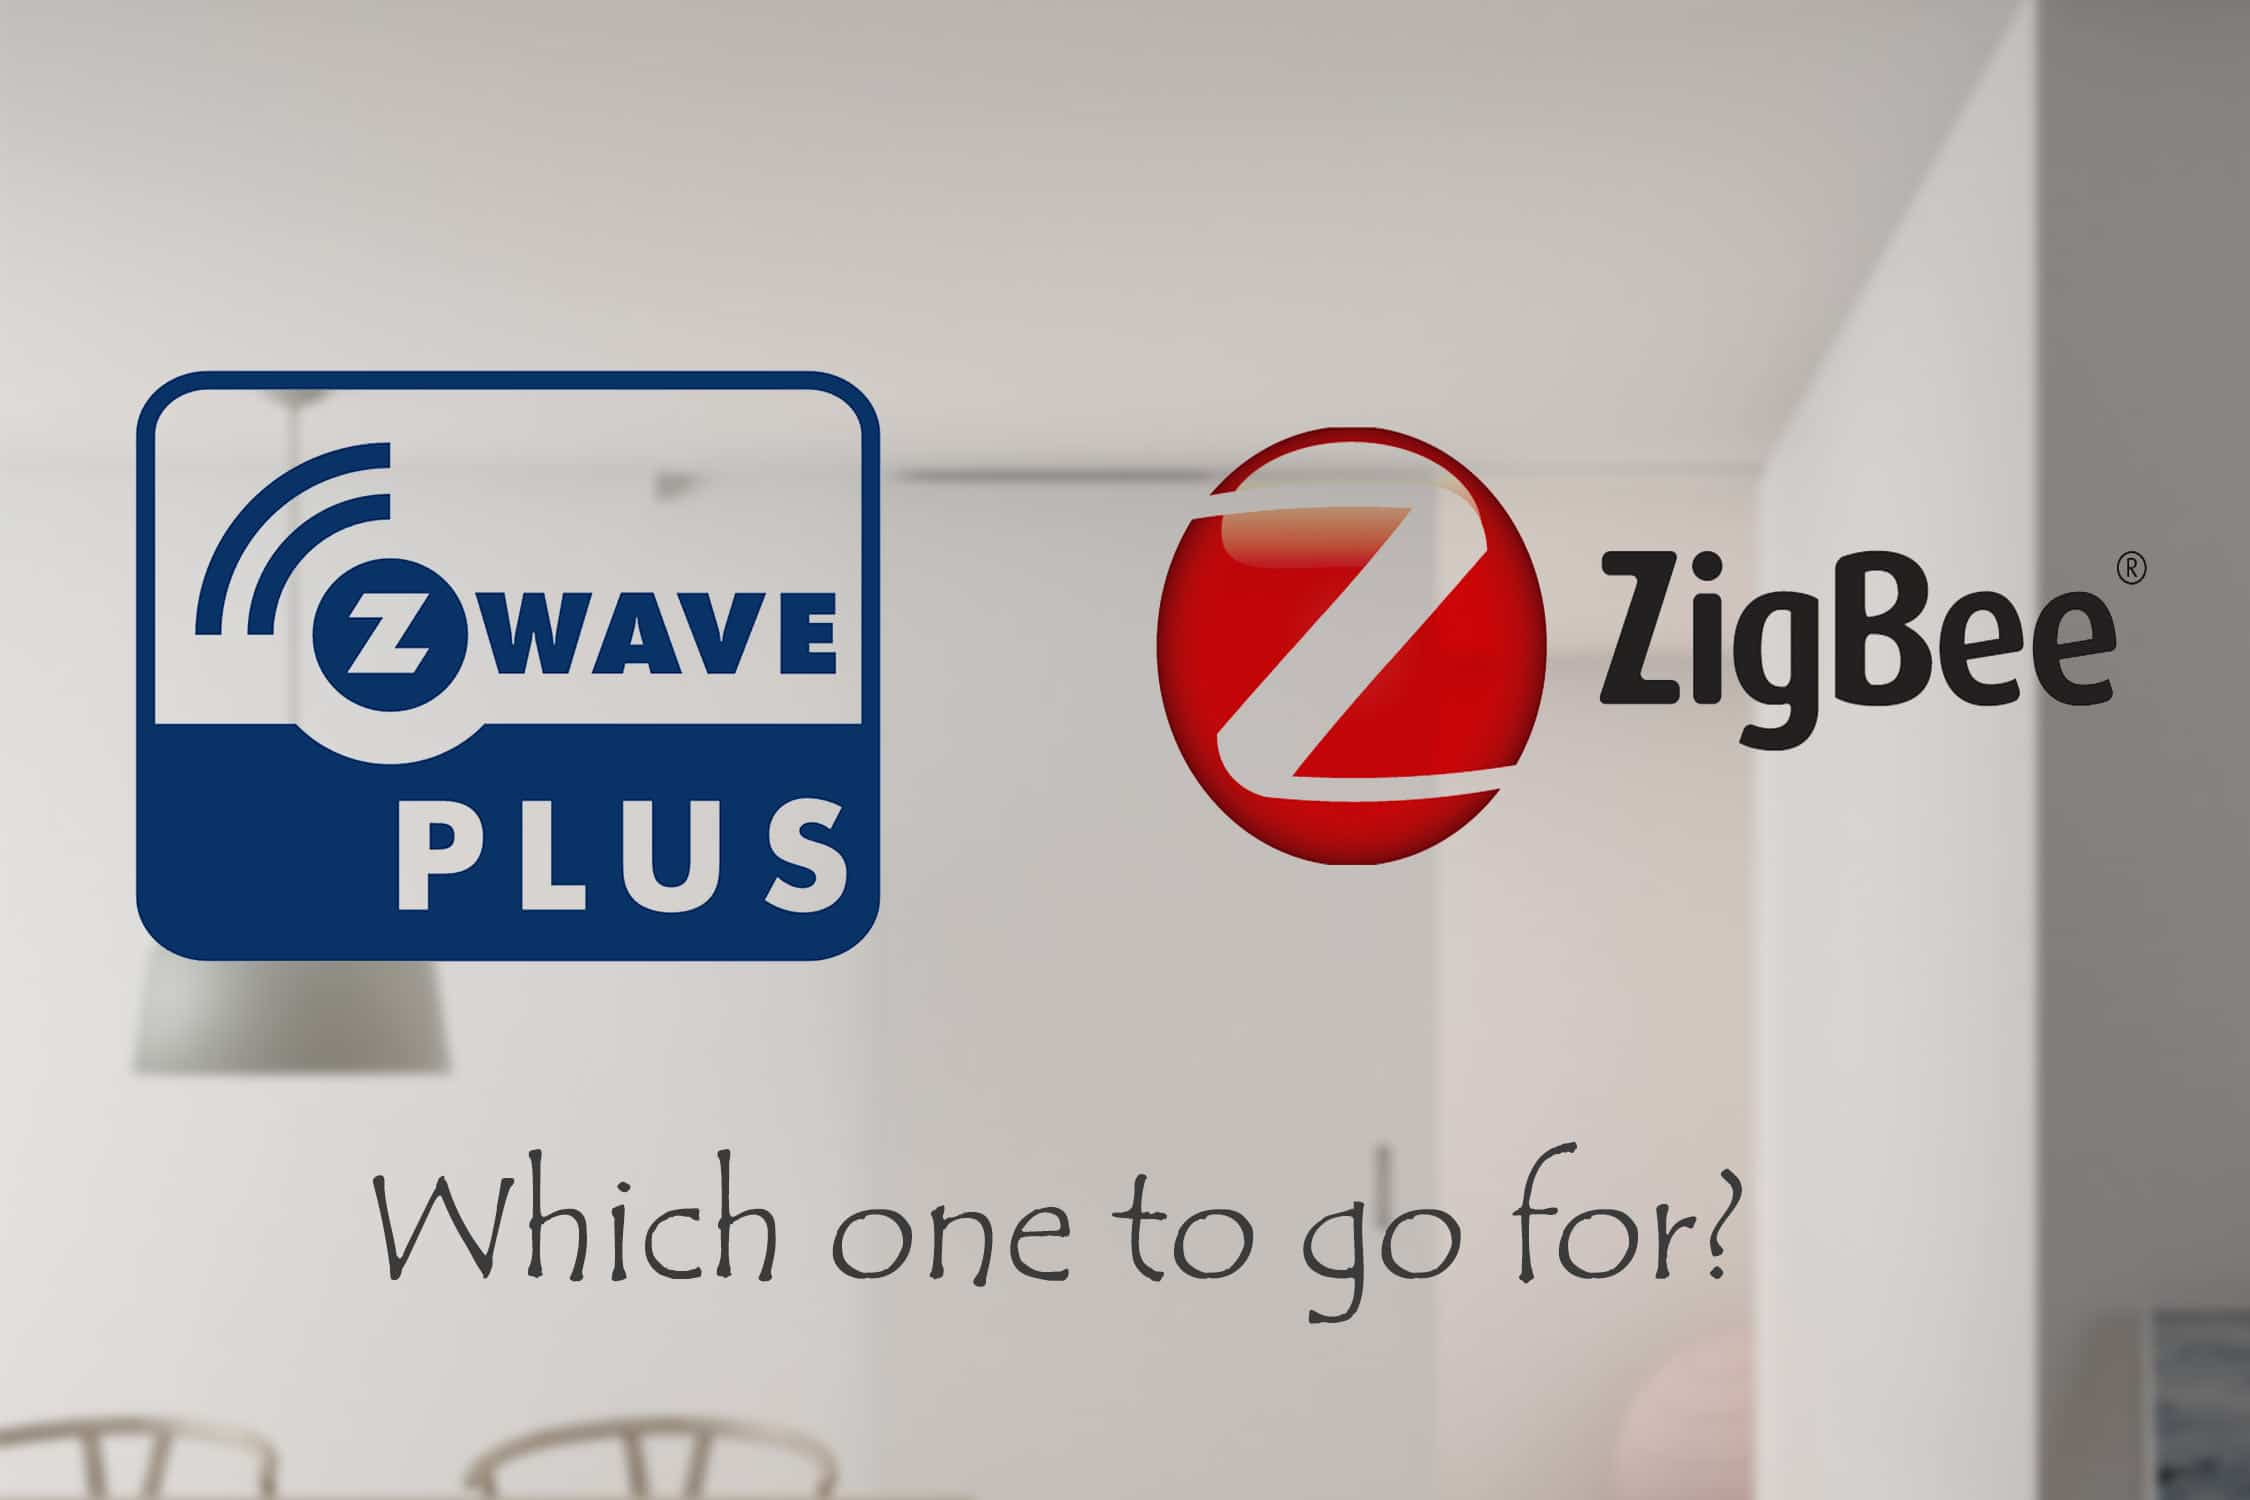 Z-wave vs Zigbee - Which on is the best?